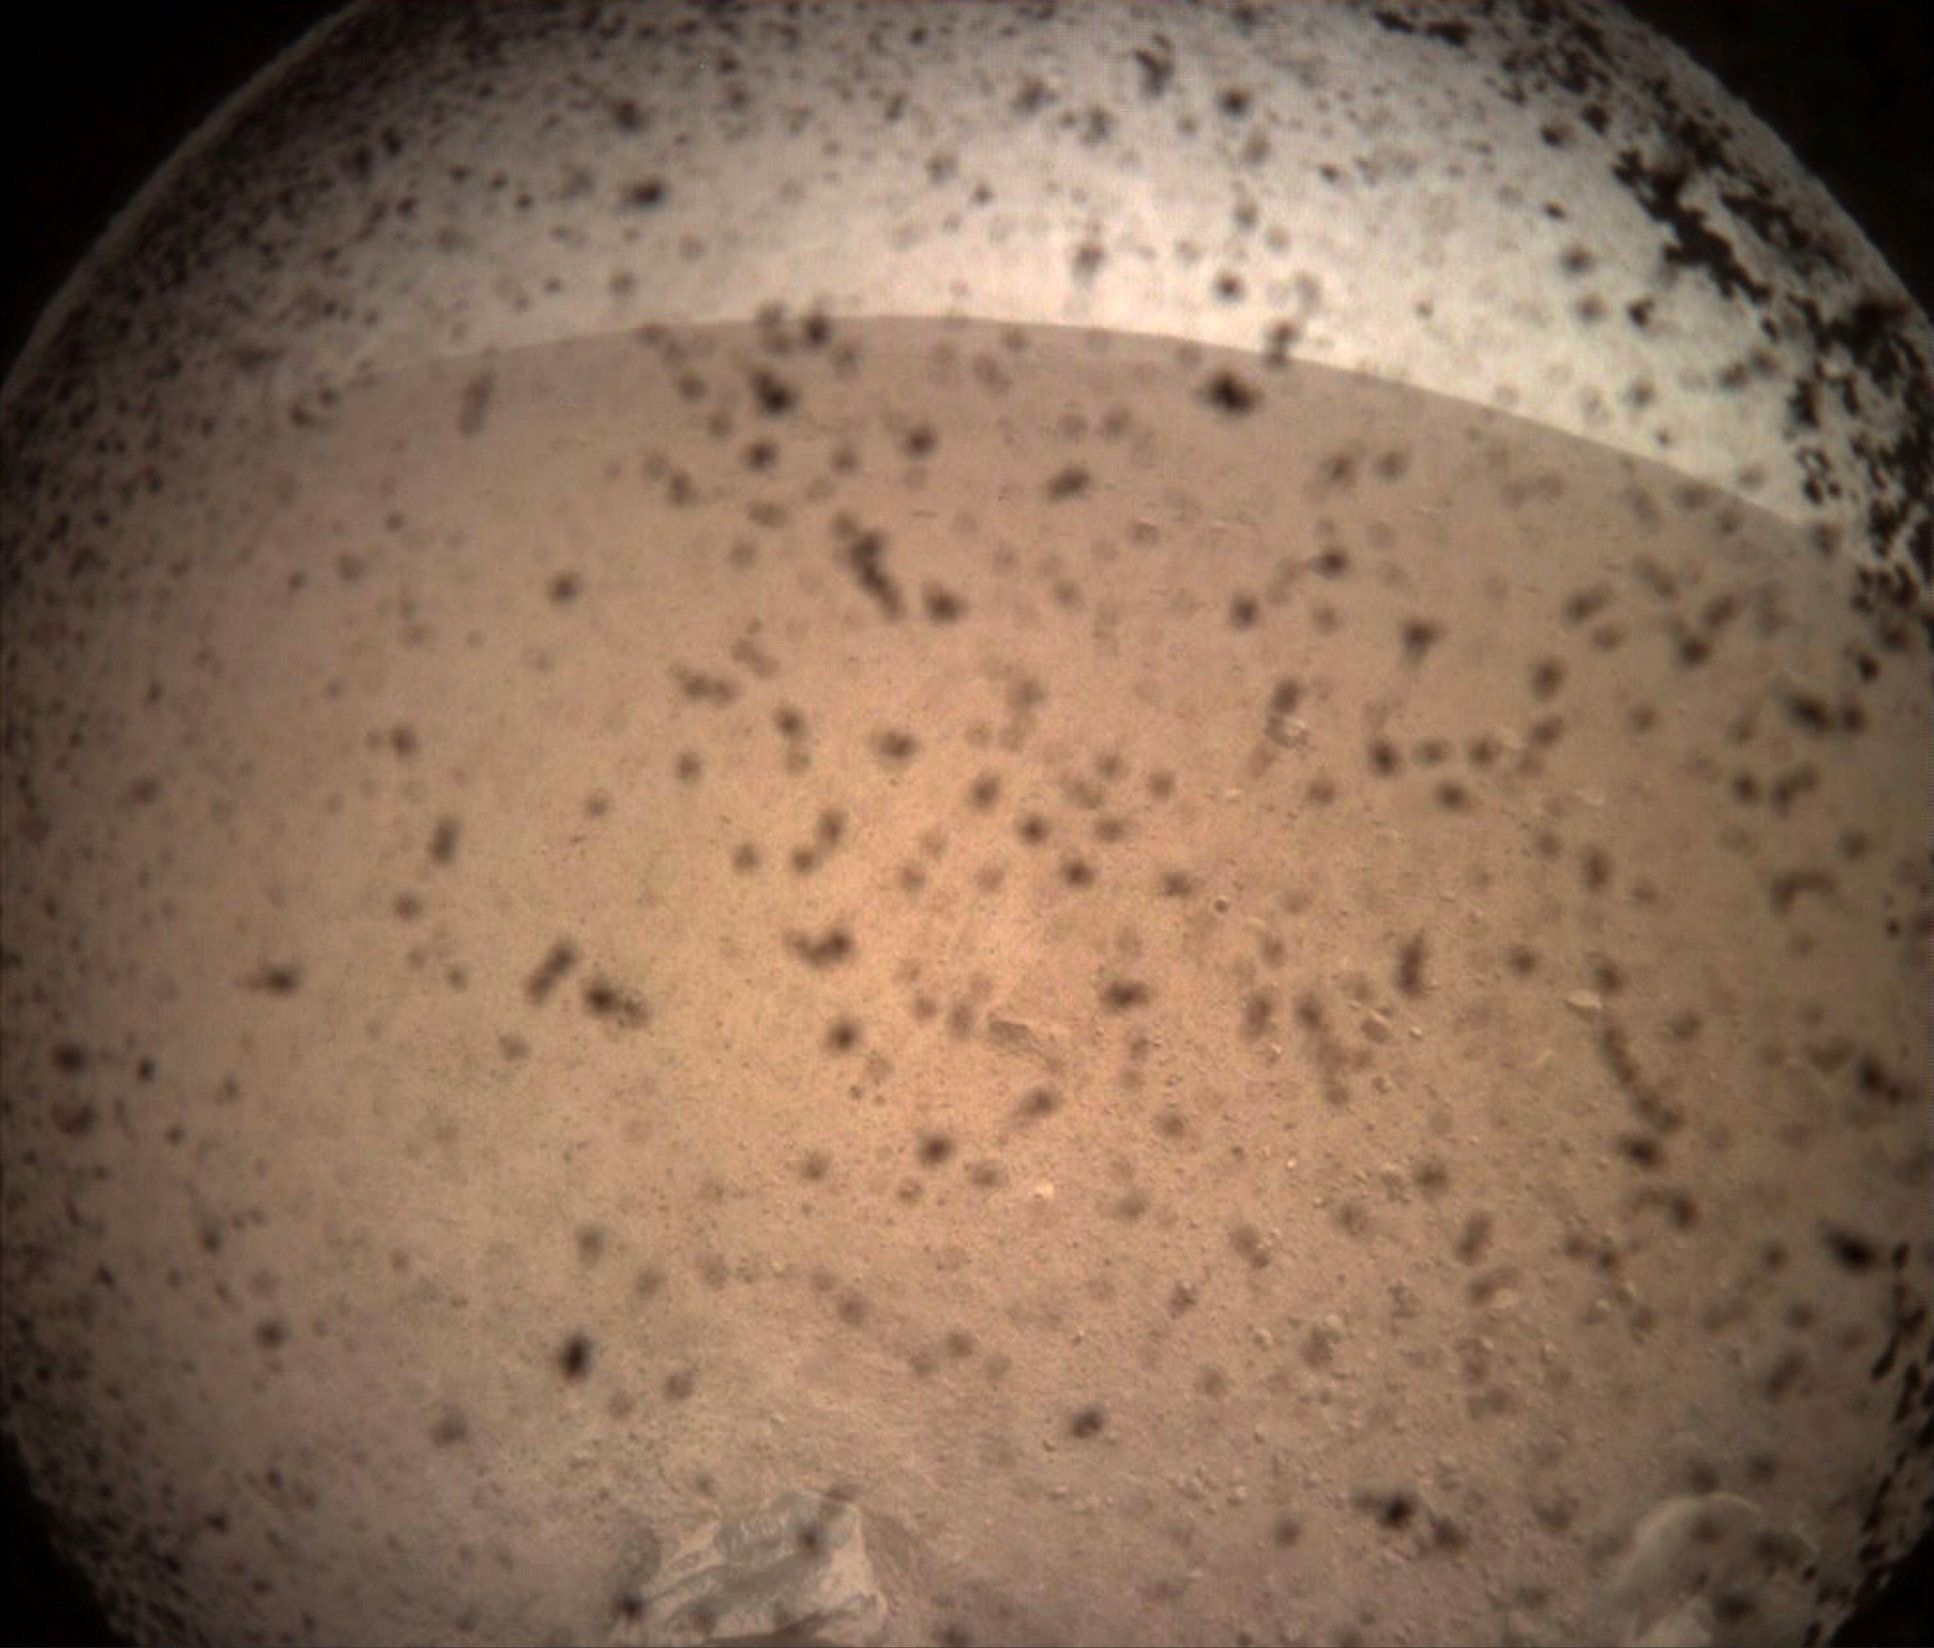 NASA's InSight probe has landed on Mars